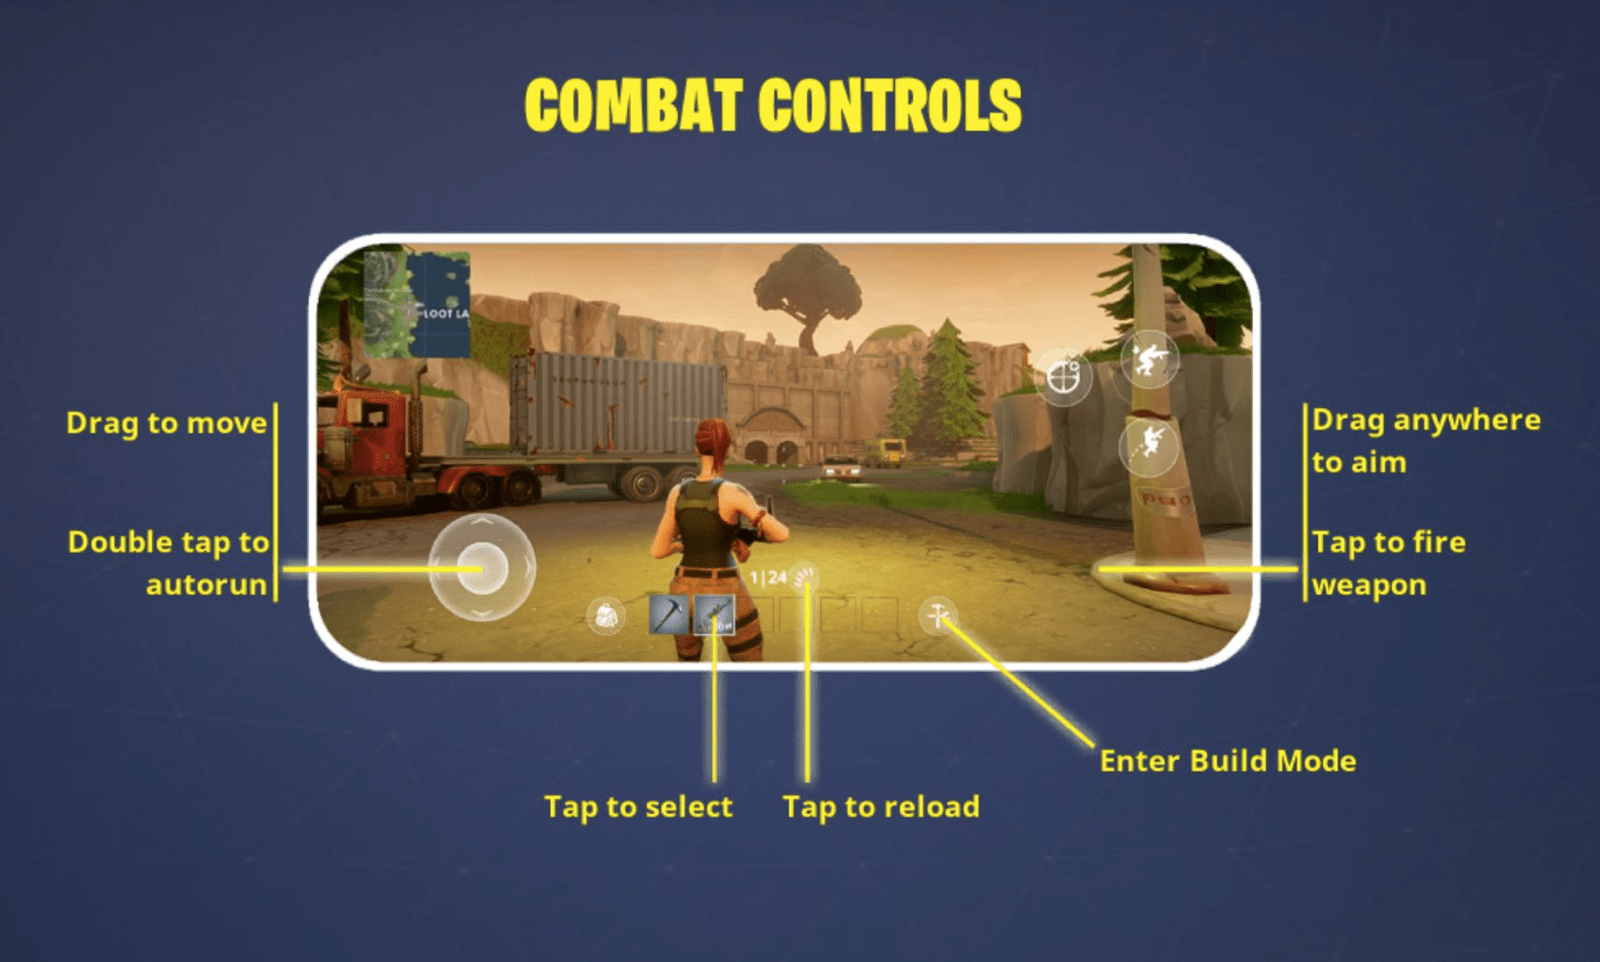 Image of Fortnite controls